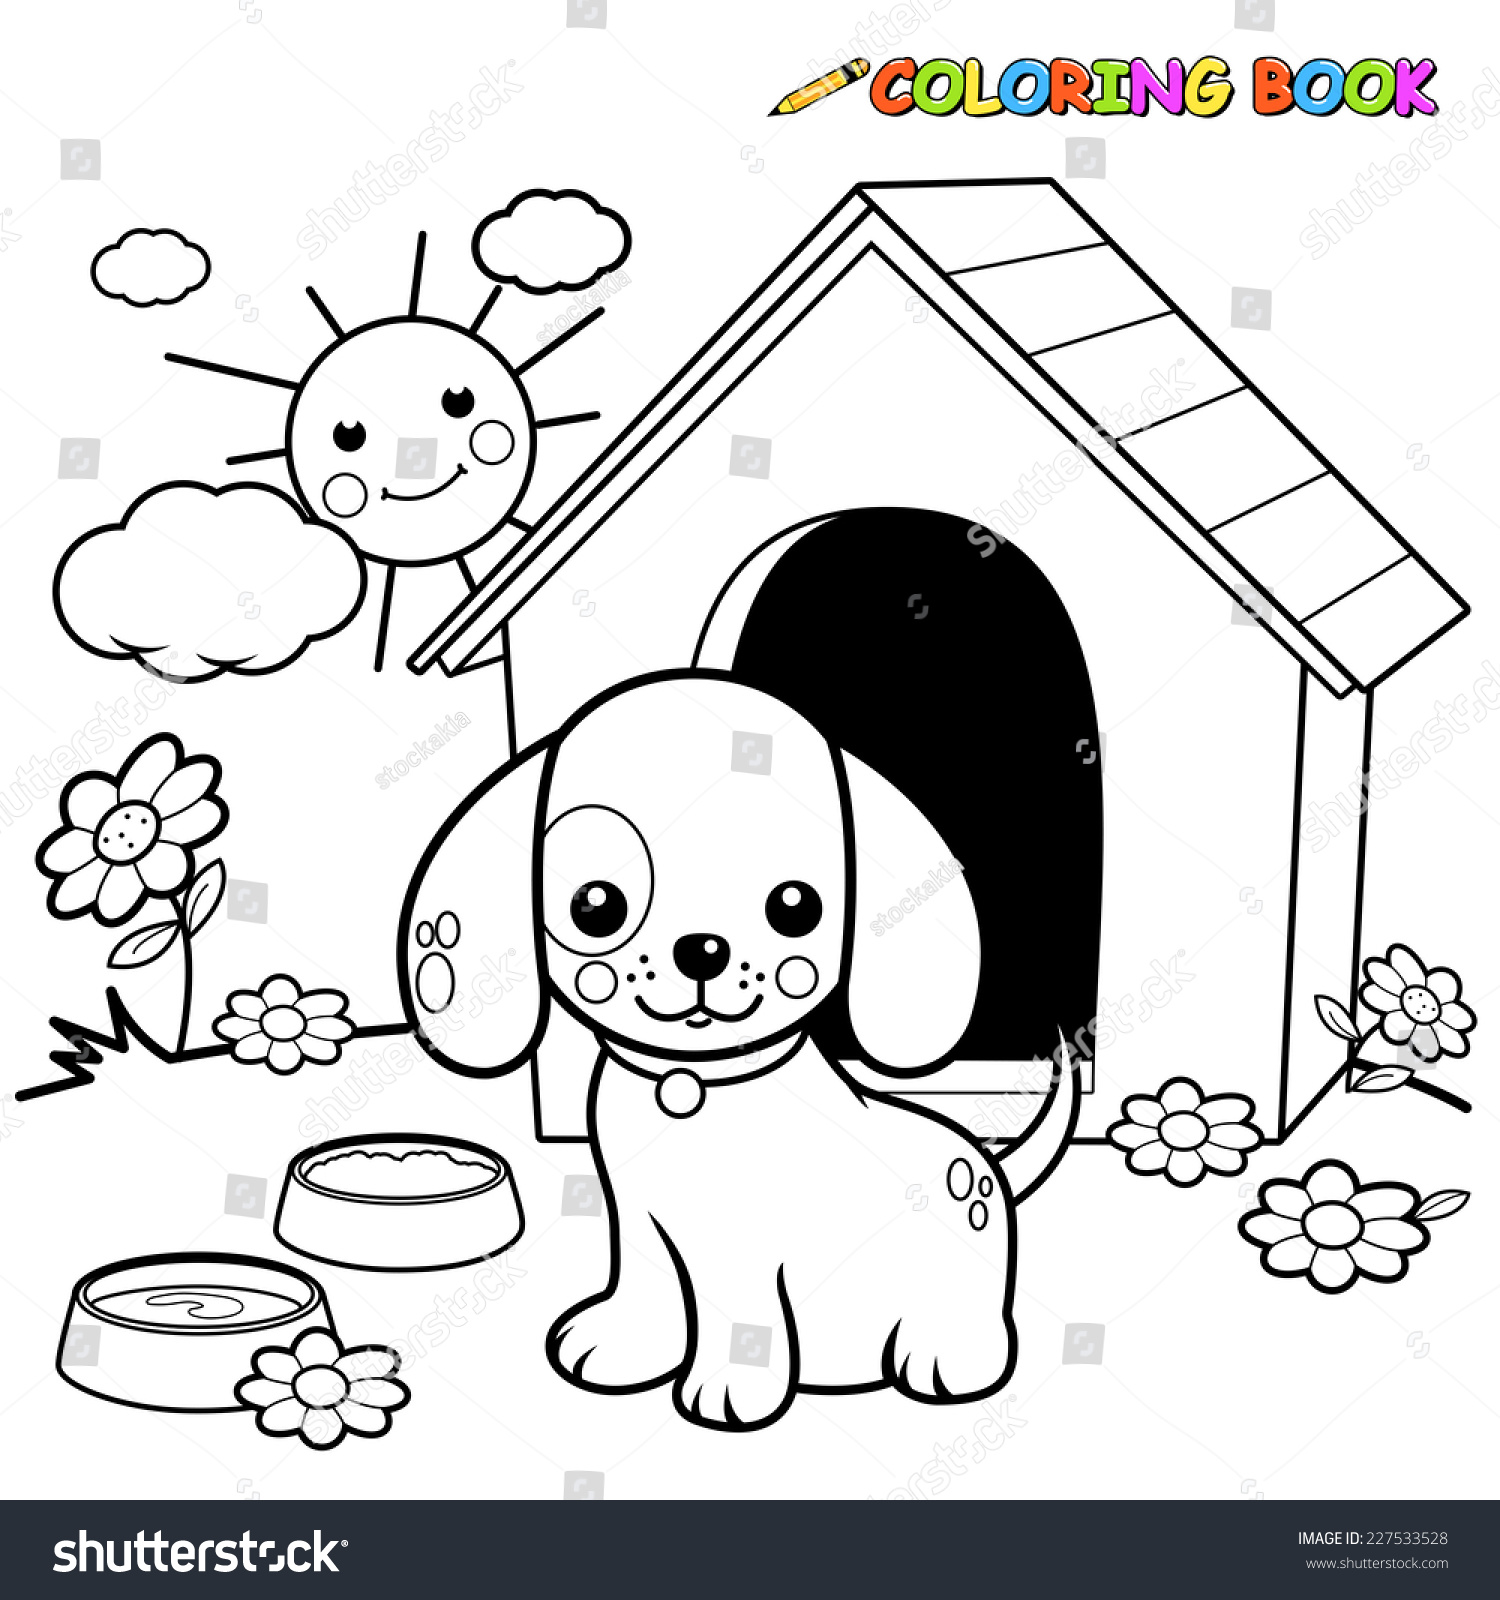 dog in doghouse clipart - photo #48